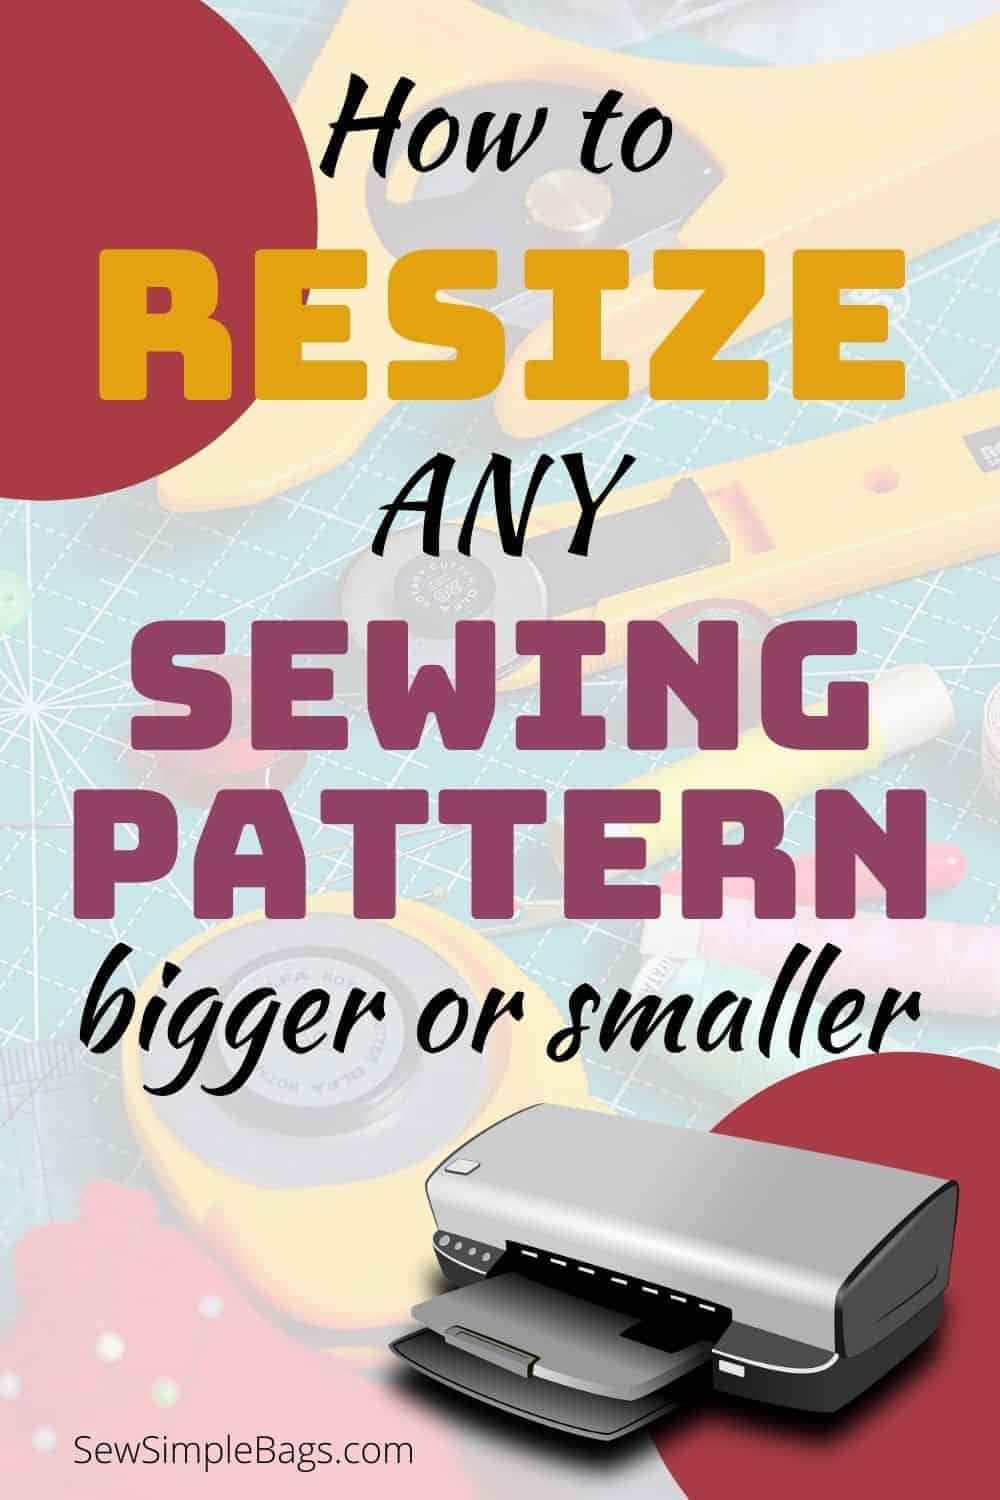 Graphic with text, how to resize any sewing pattern bigger or smaller